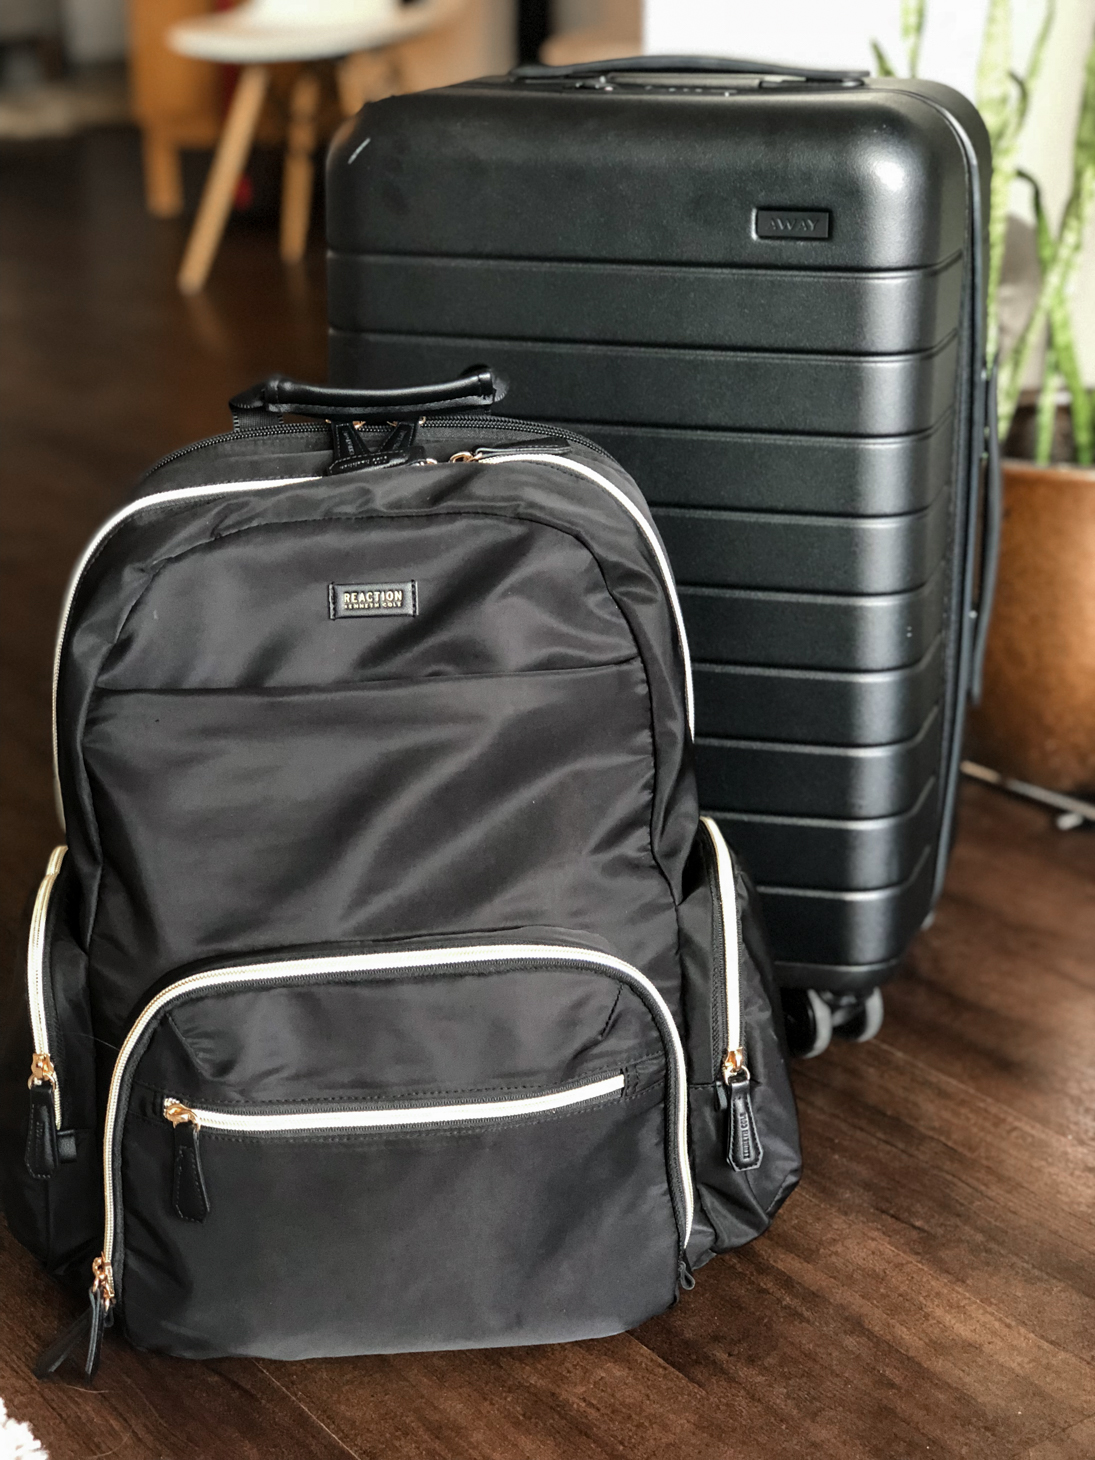 3ca2336020 Away Carry-On Suitcase   Travel Backpack Review - Adventures in Gourmet